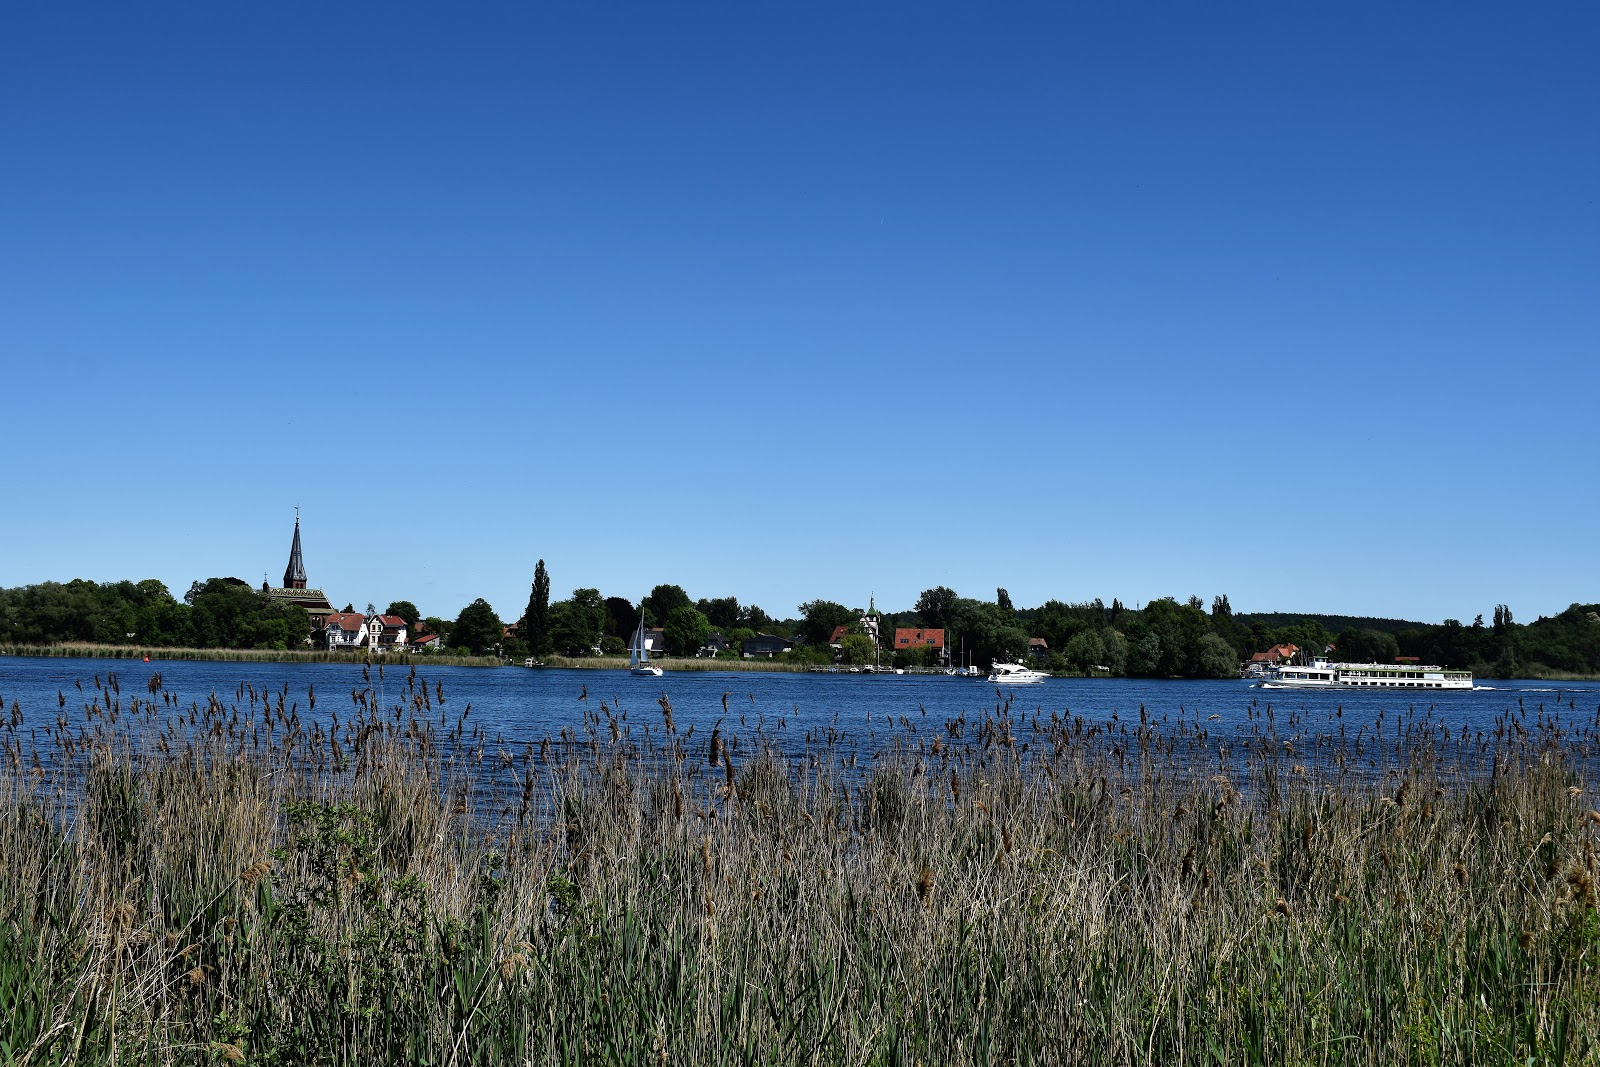 Ilana Travels The Day I Fell In Love With Werder An Der Havel